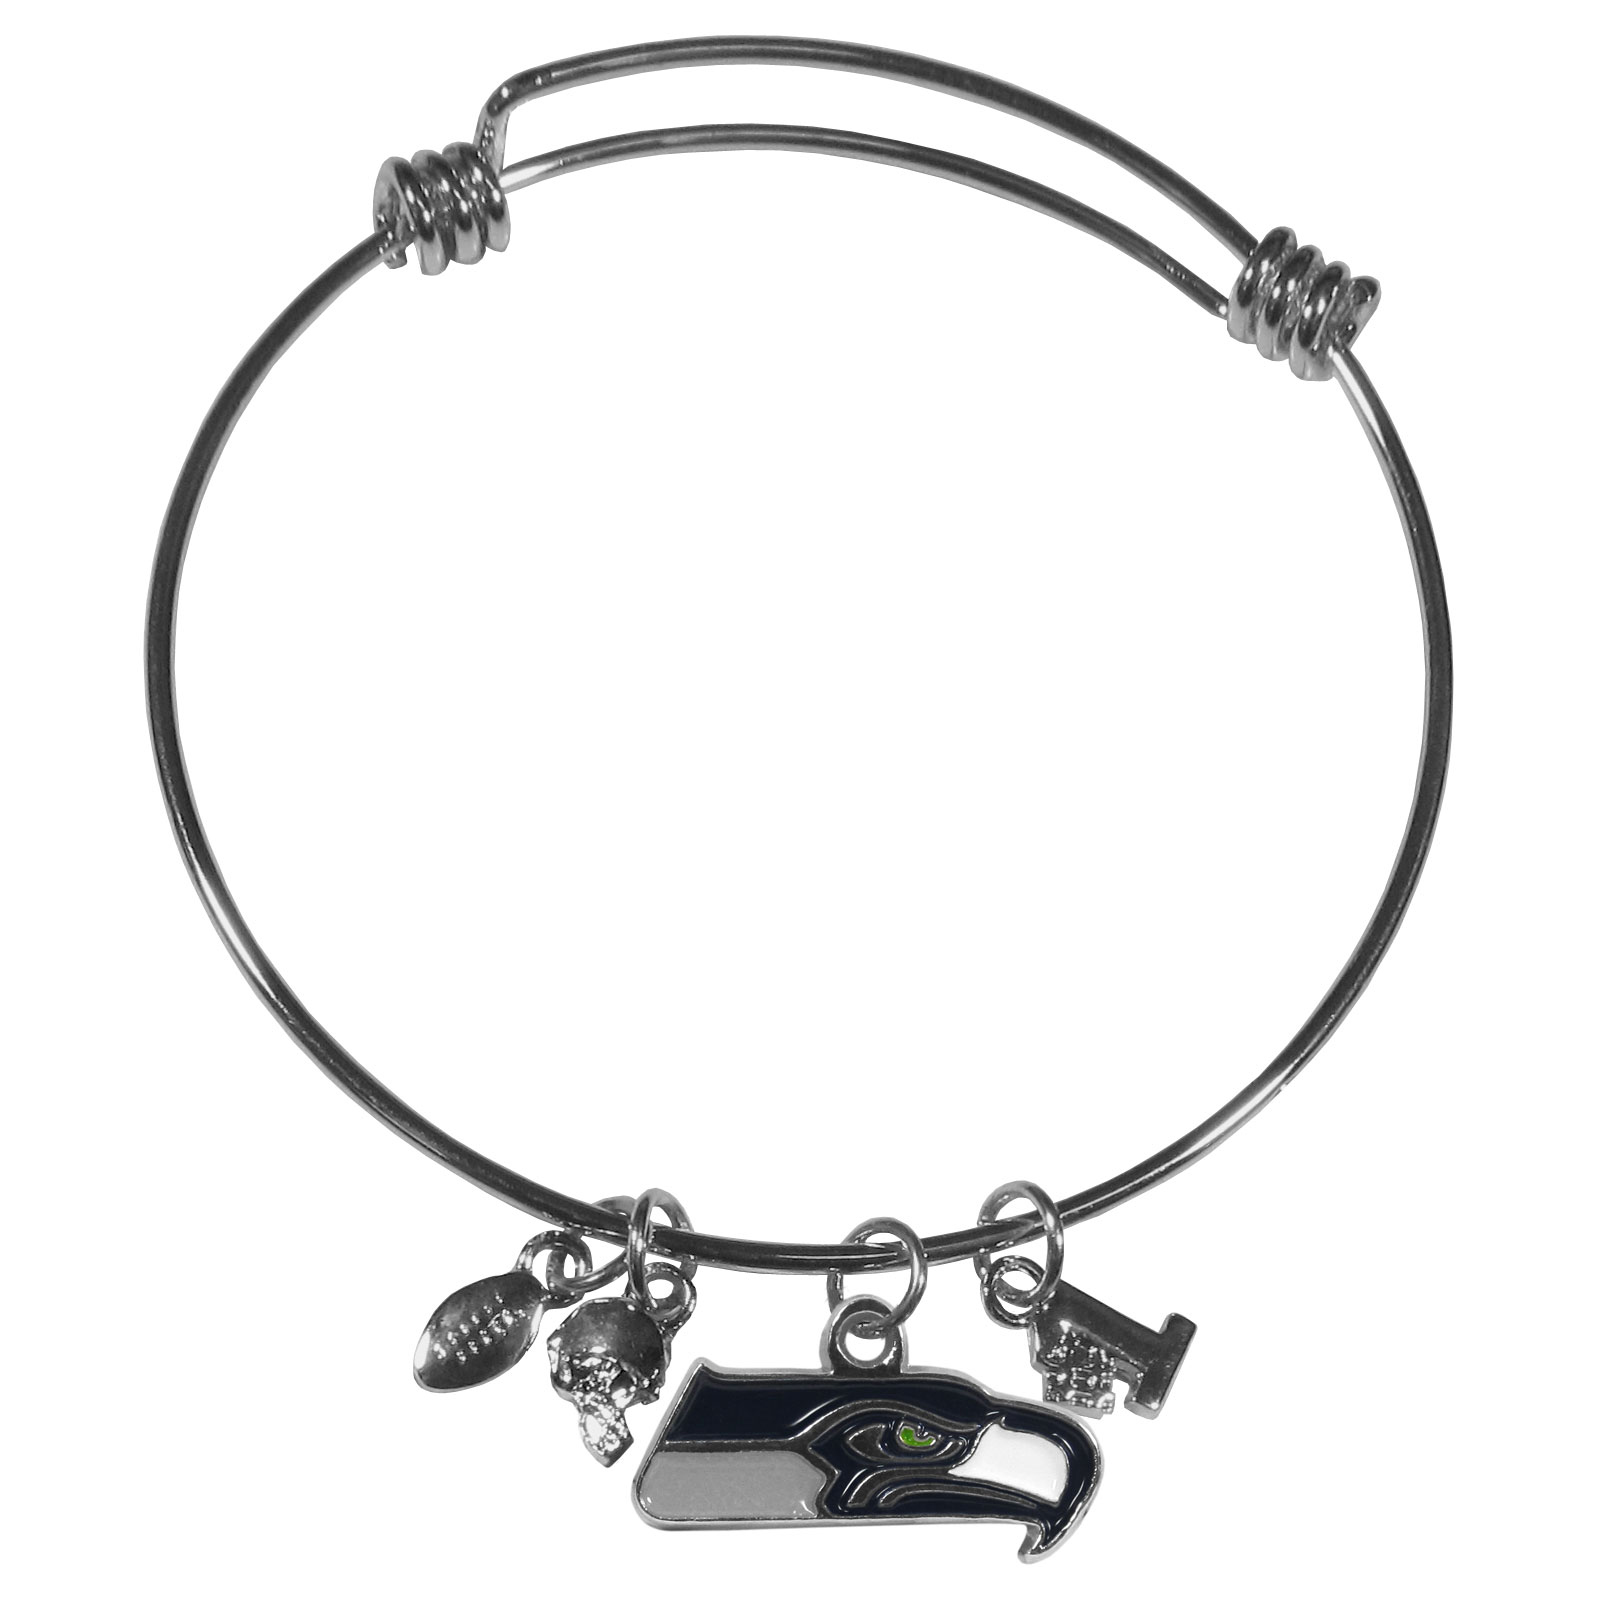 Seattle Seahawks Charm Bangle Bracelet - Adjustable wire bracelets are all the rage and this Seattle Seahawks bracelet matches the popular trend with your beloved team. The bracelet features 4 charms in total, each feature exceptional detail and the team charm has enameled team colors.